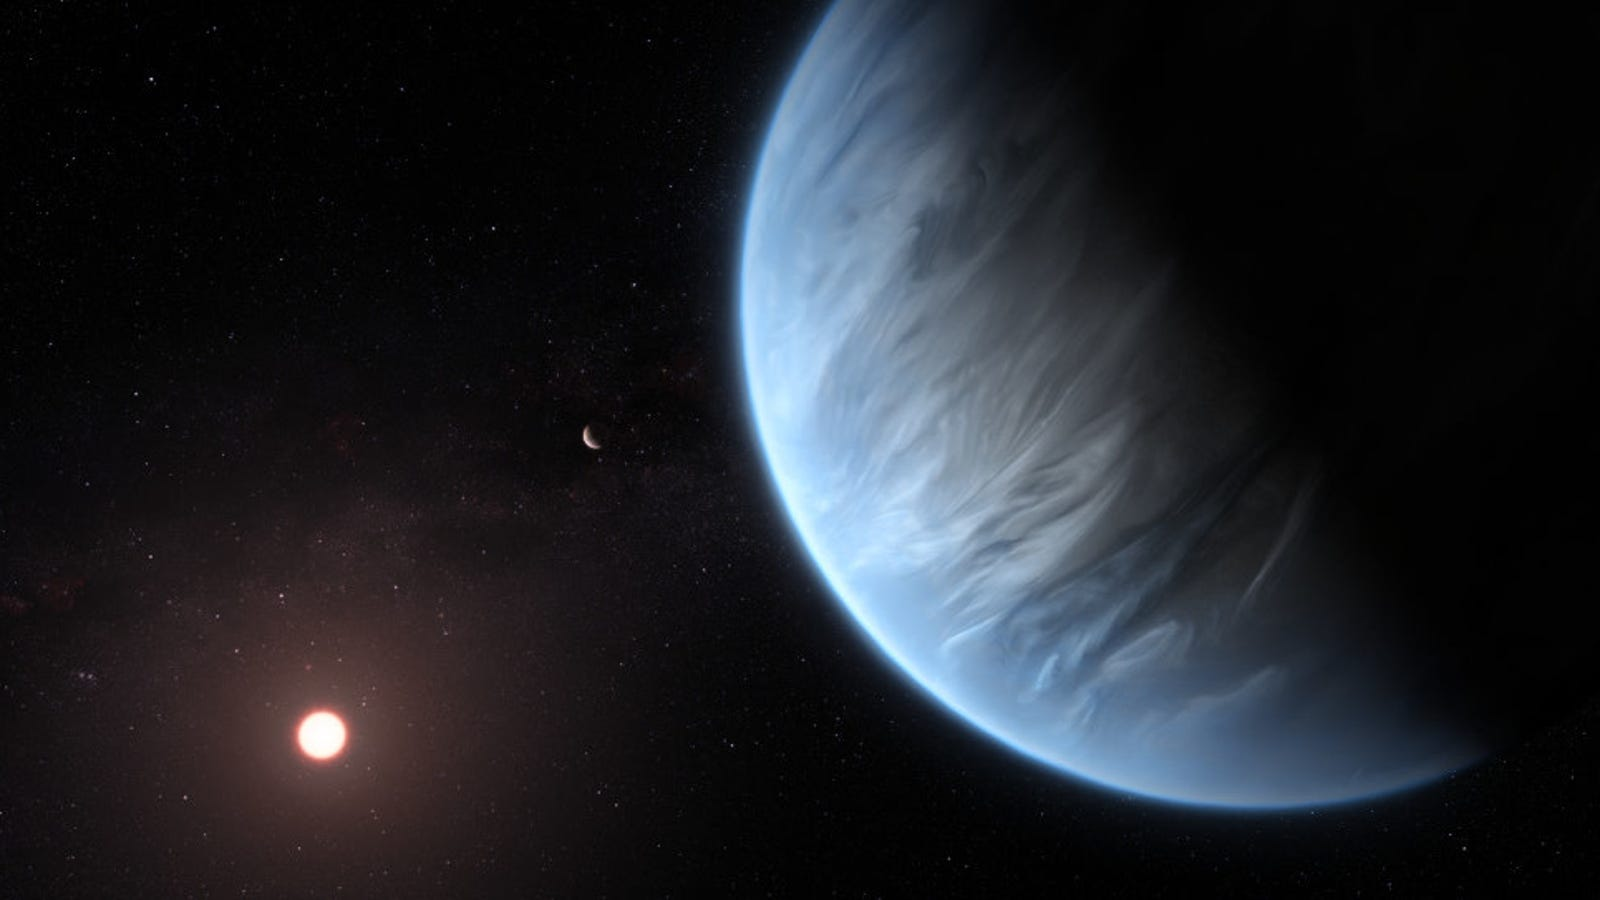 Water Vapor Detected in the Atmosphere of a Potentially Habitable Super-Earth